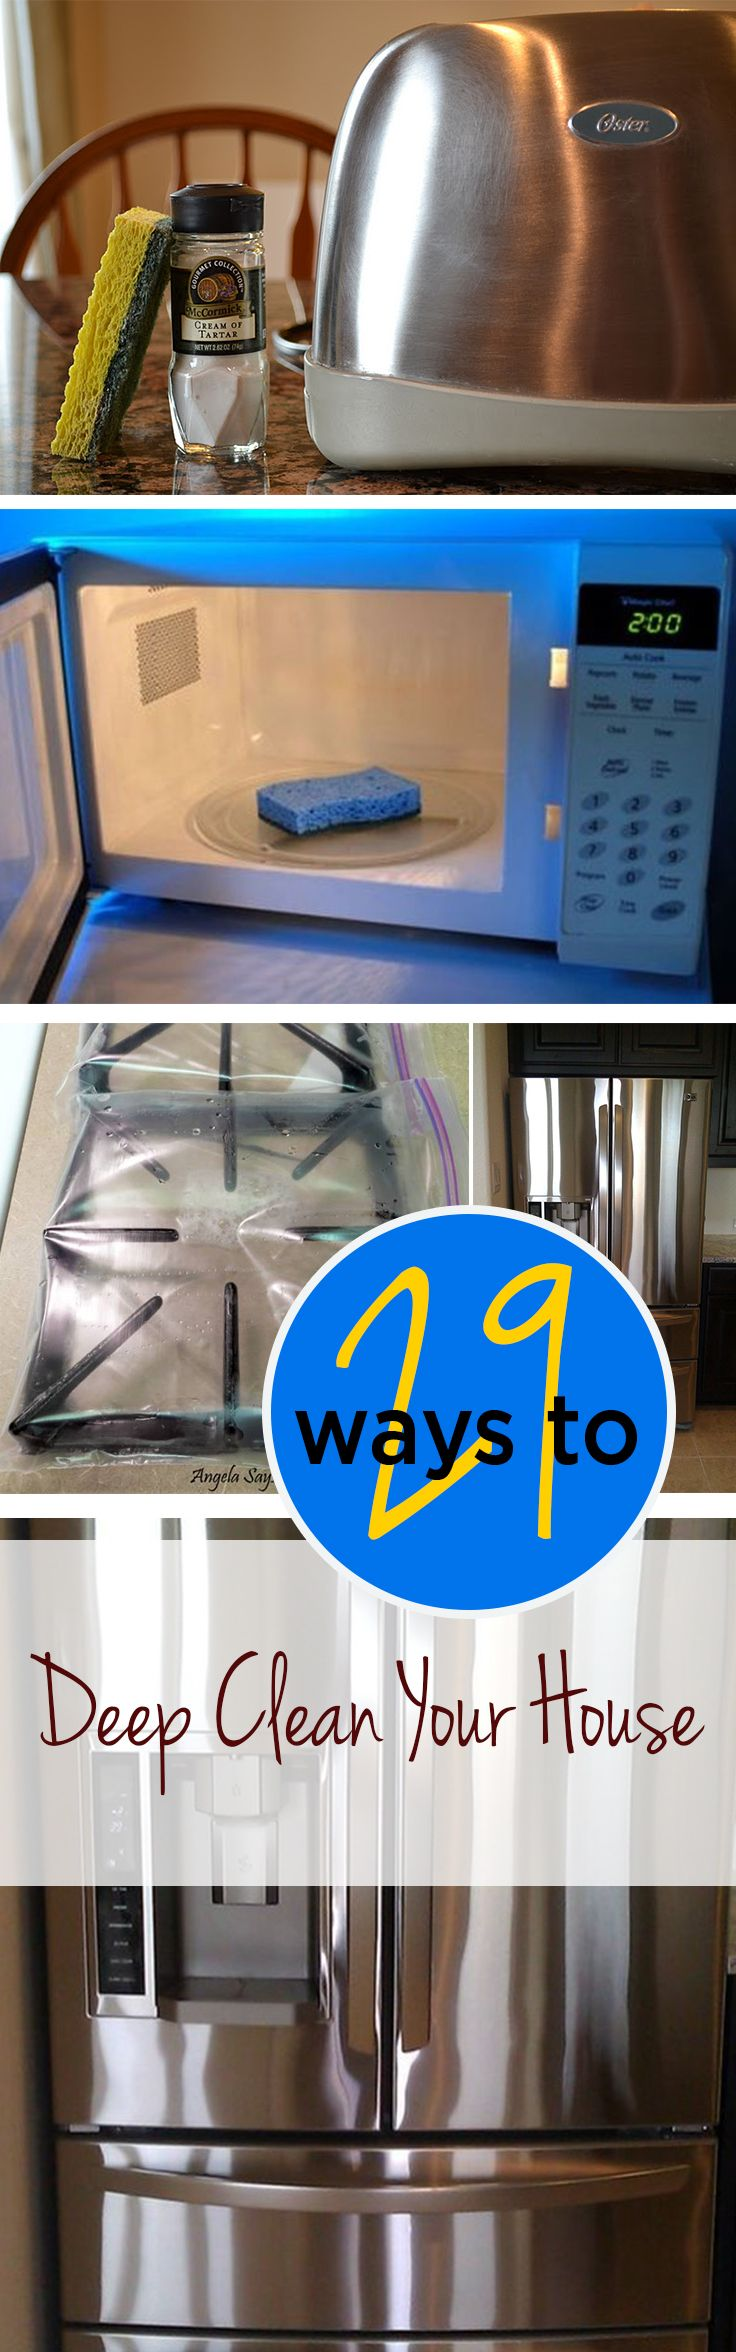 29 ways to deep clean your home cleaning house and organizing